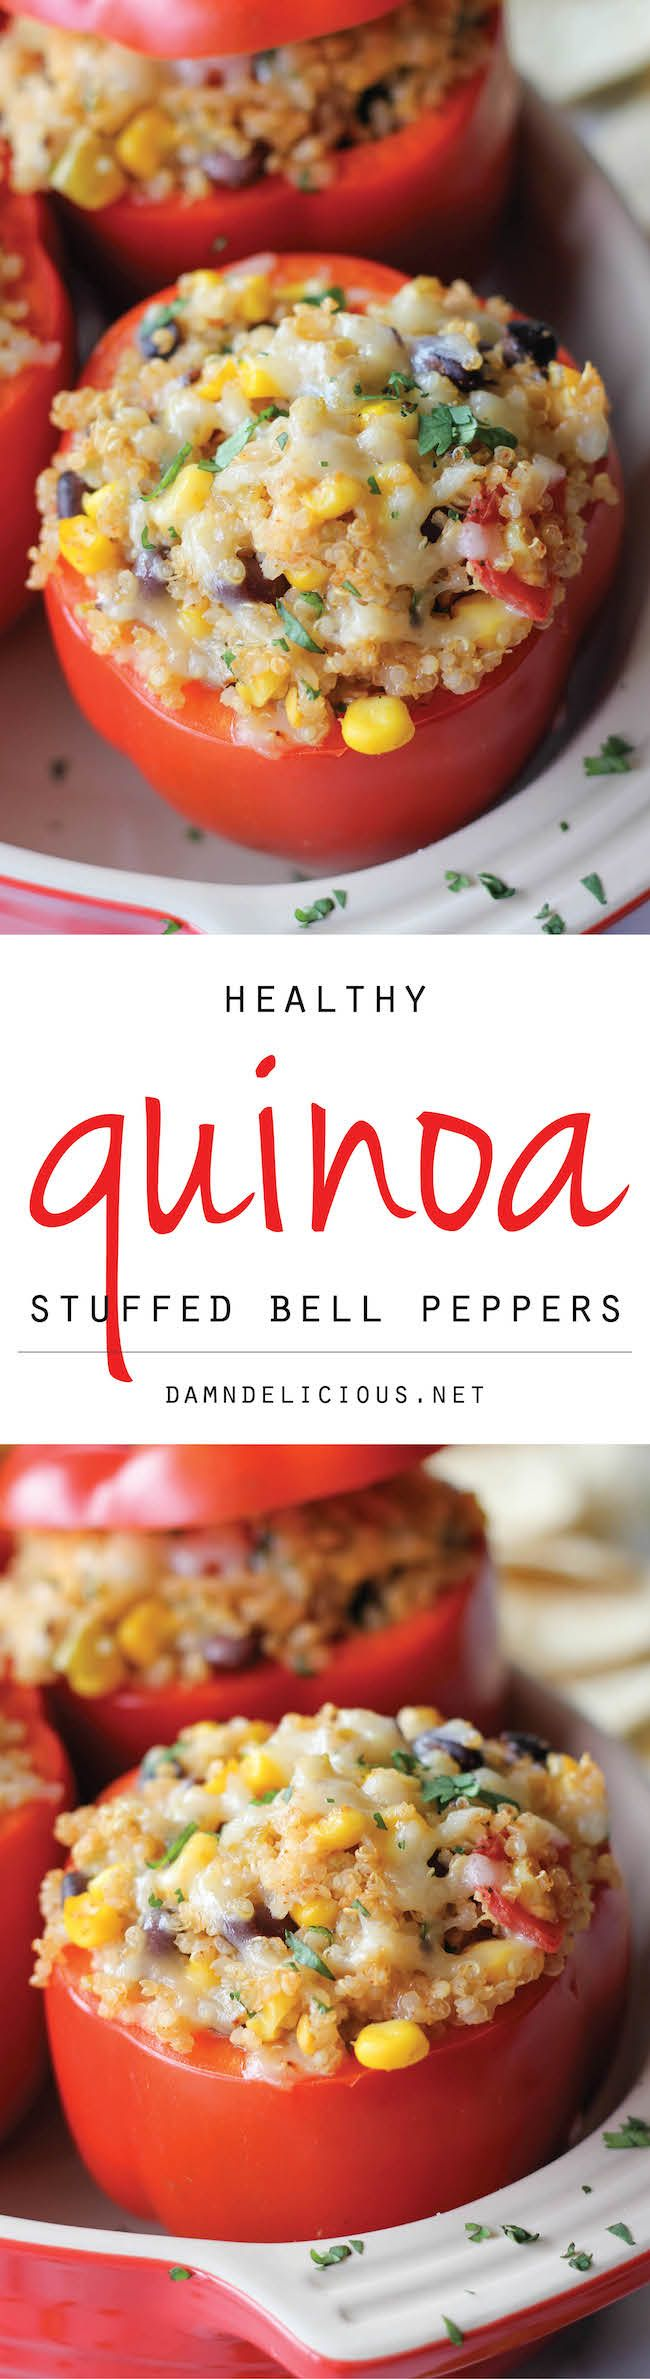 Quinoa Stuffed Bell Peppers - These stuffed bell peppers will provide the nutrition that you need for a healthy, balanced meal! #vegetarian #easy #recipe #healthy #recipes